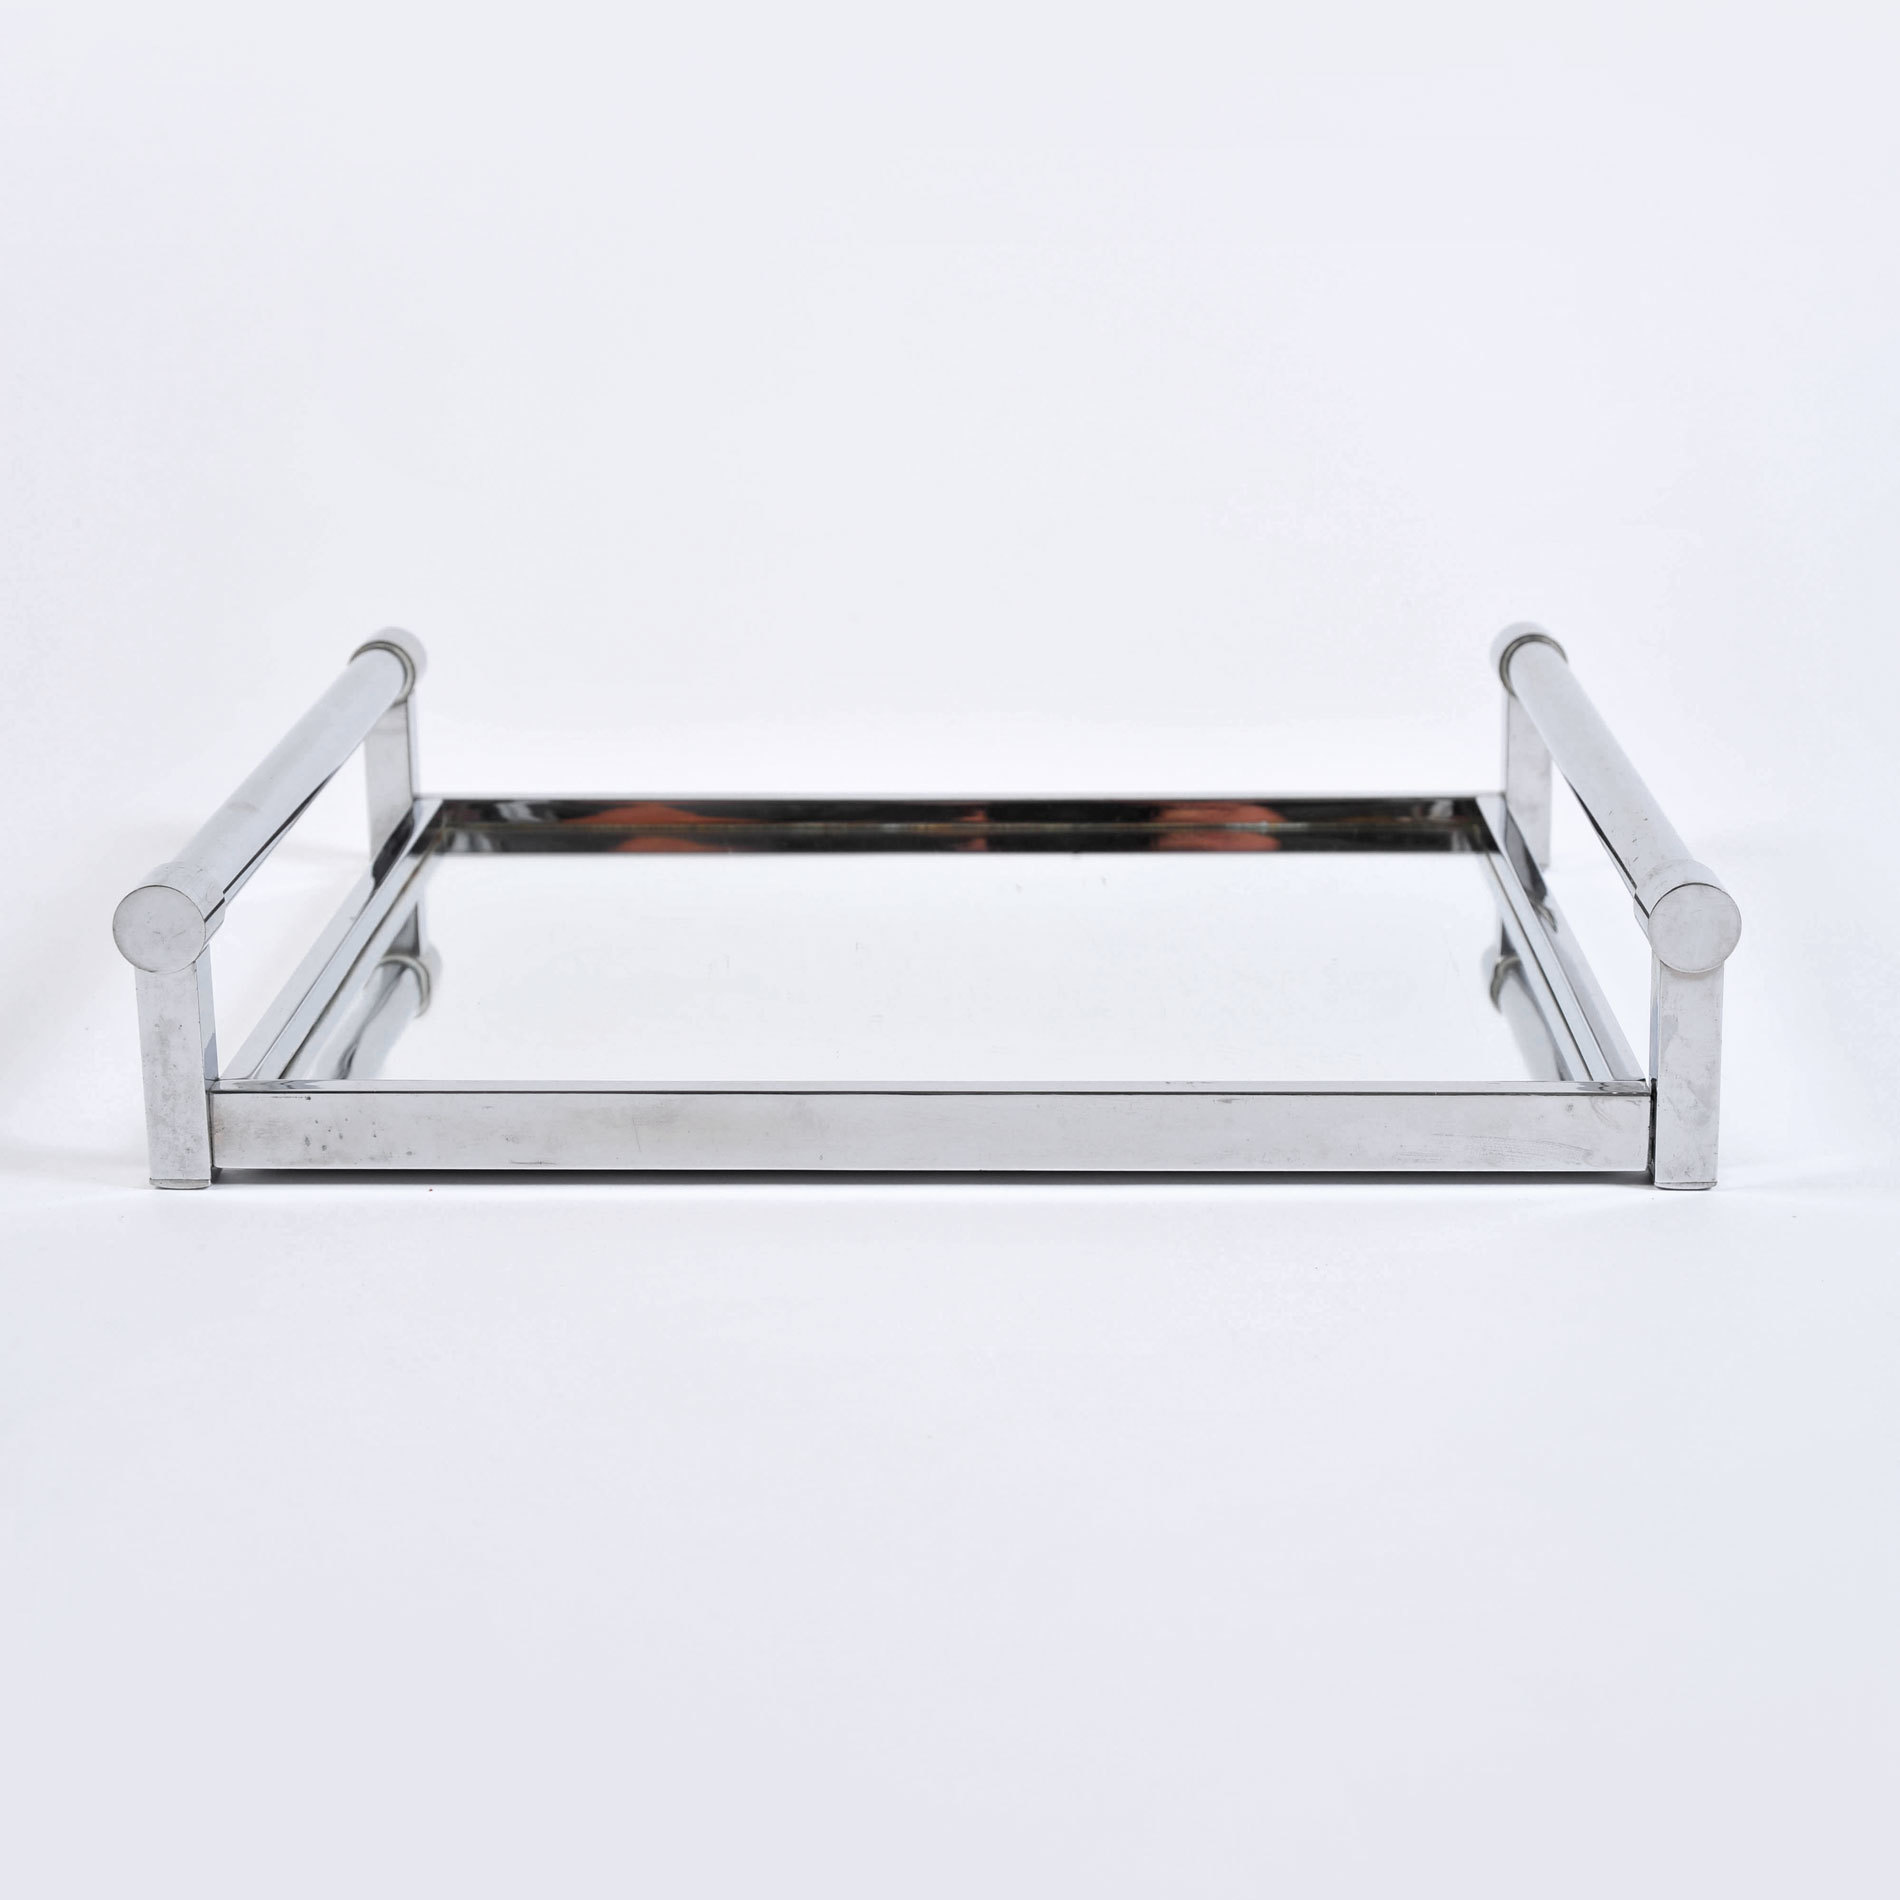 The image for 1950S Rectangular Chrome Tray 02